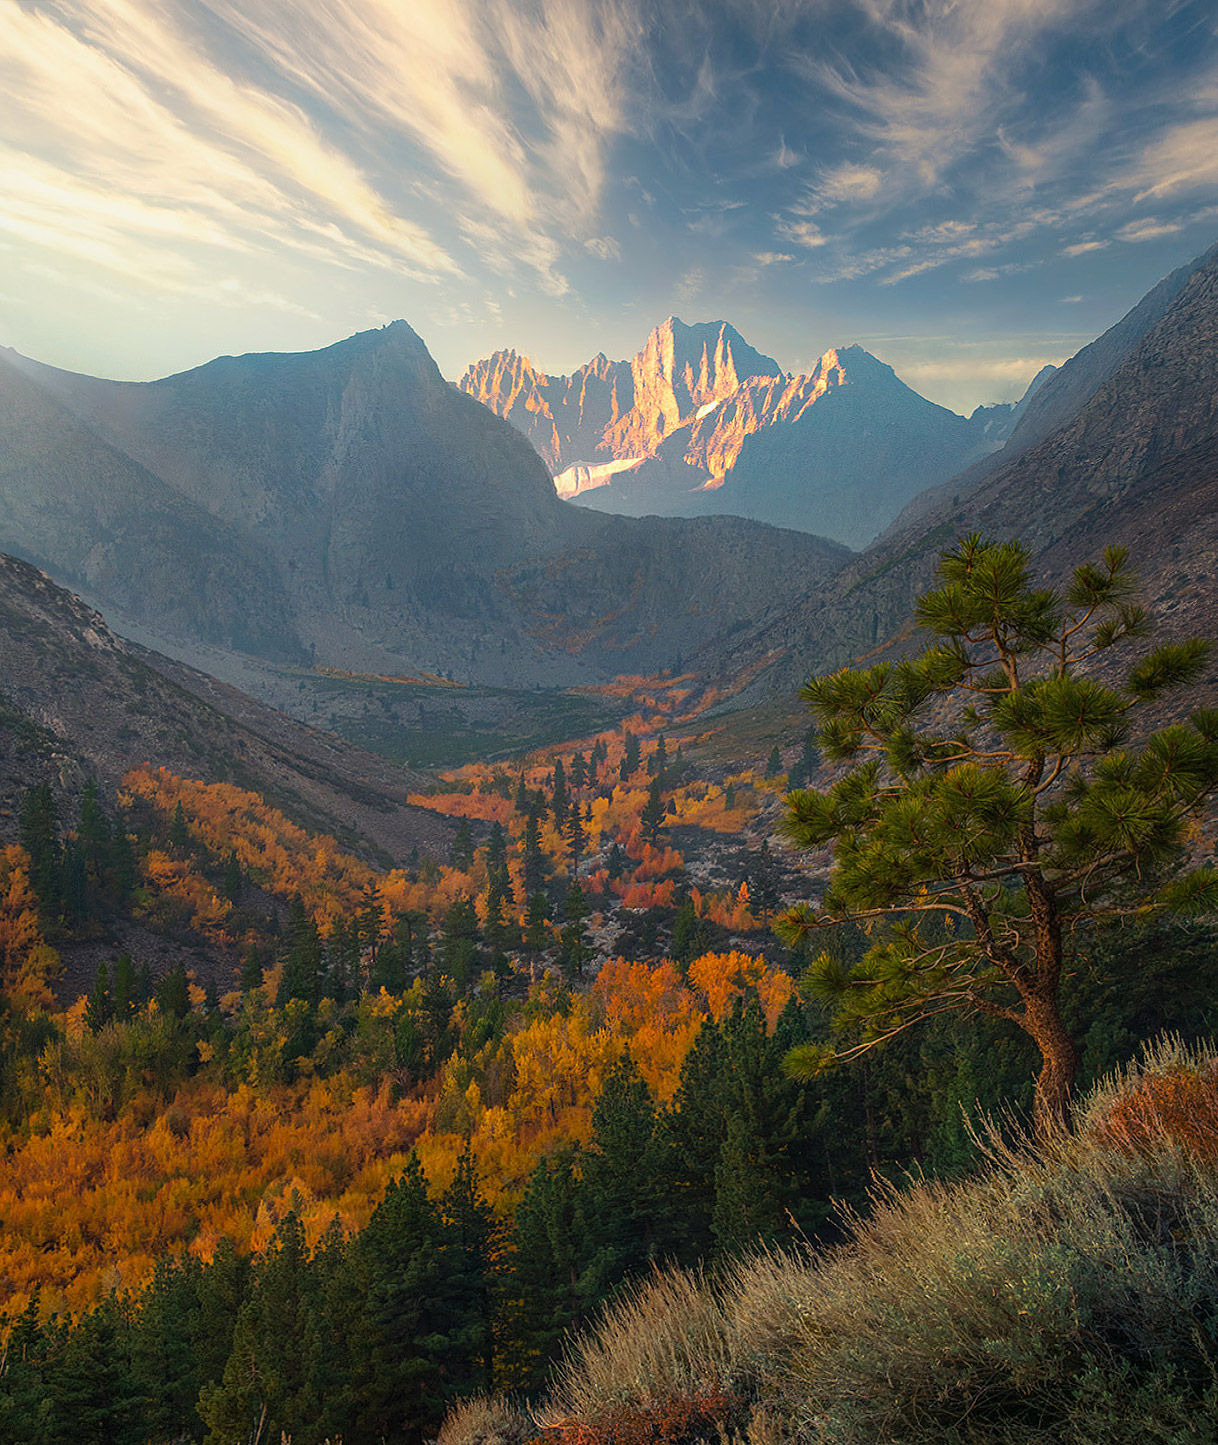 Soft light in the morning with sage, pines and aspen in the eastern Sierra of California.